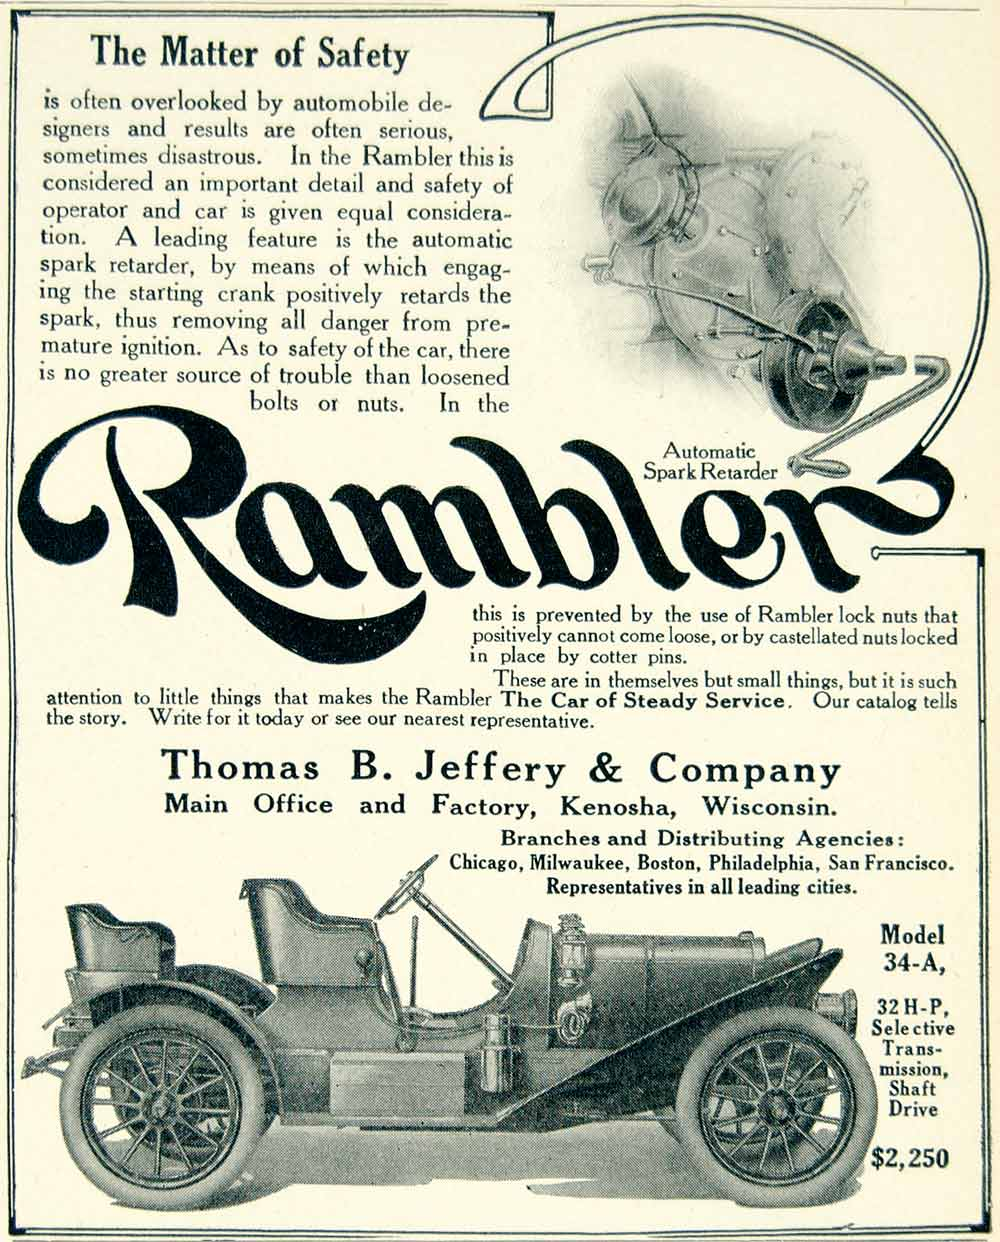 1908 Ad Vintage Rambler Model 34-A Automatic Spark Retarder Safety Feature YLF2